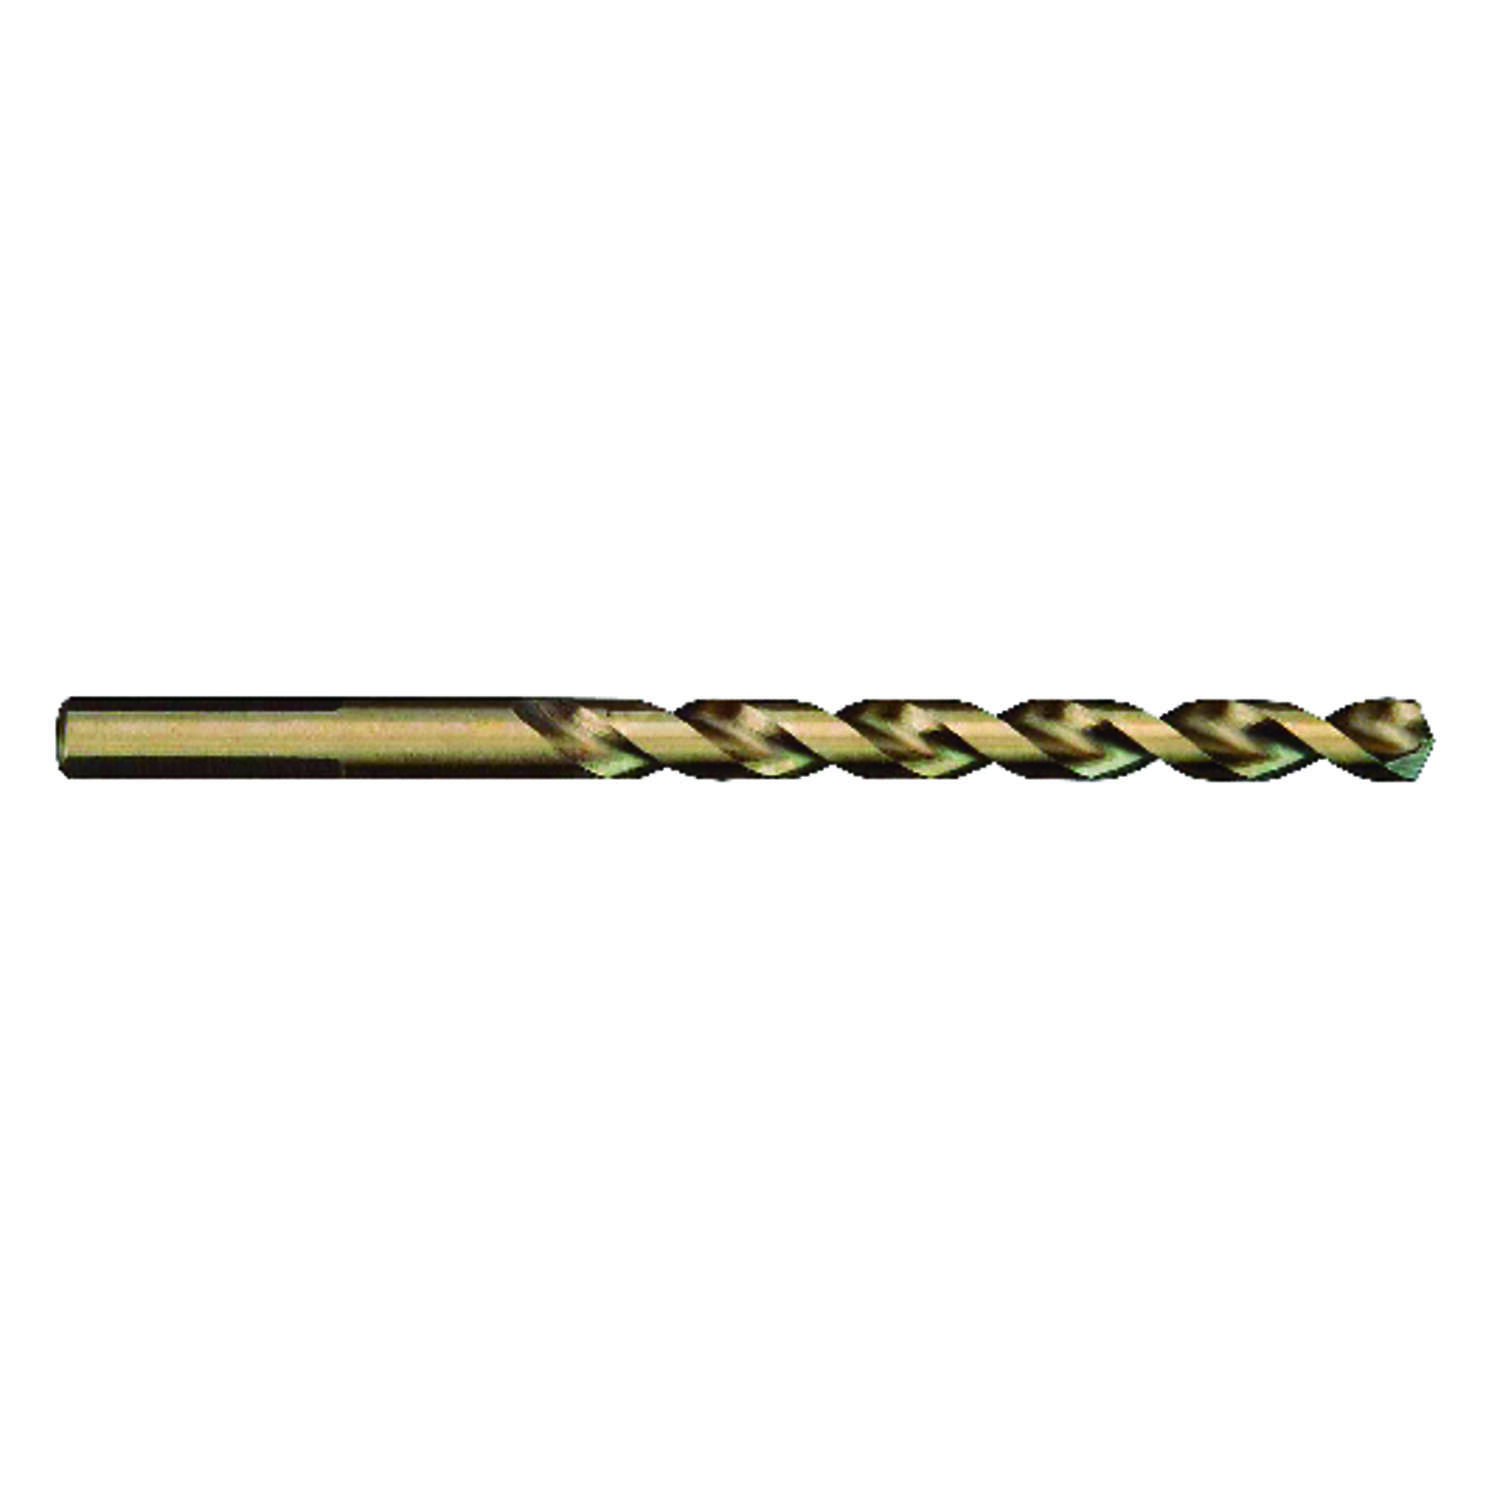 Milwaukee  RED HELIX  7/64 in.  x 2-5/8 in. L Cobalt Steel  THUNDERBOLT  Drill Bit  1 pc.